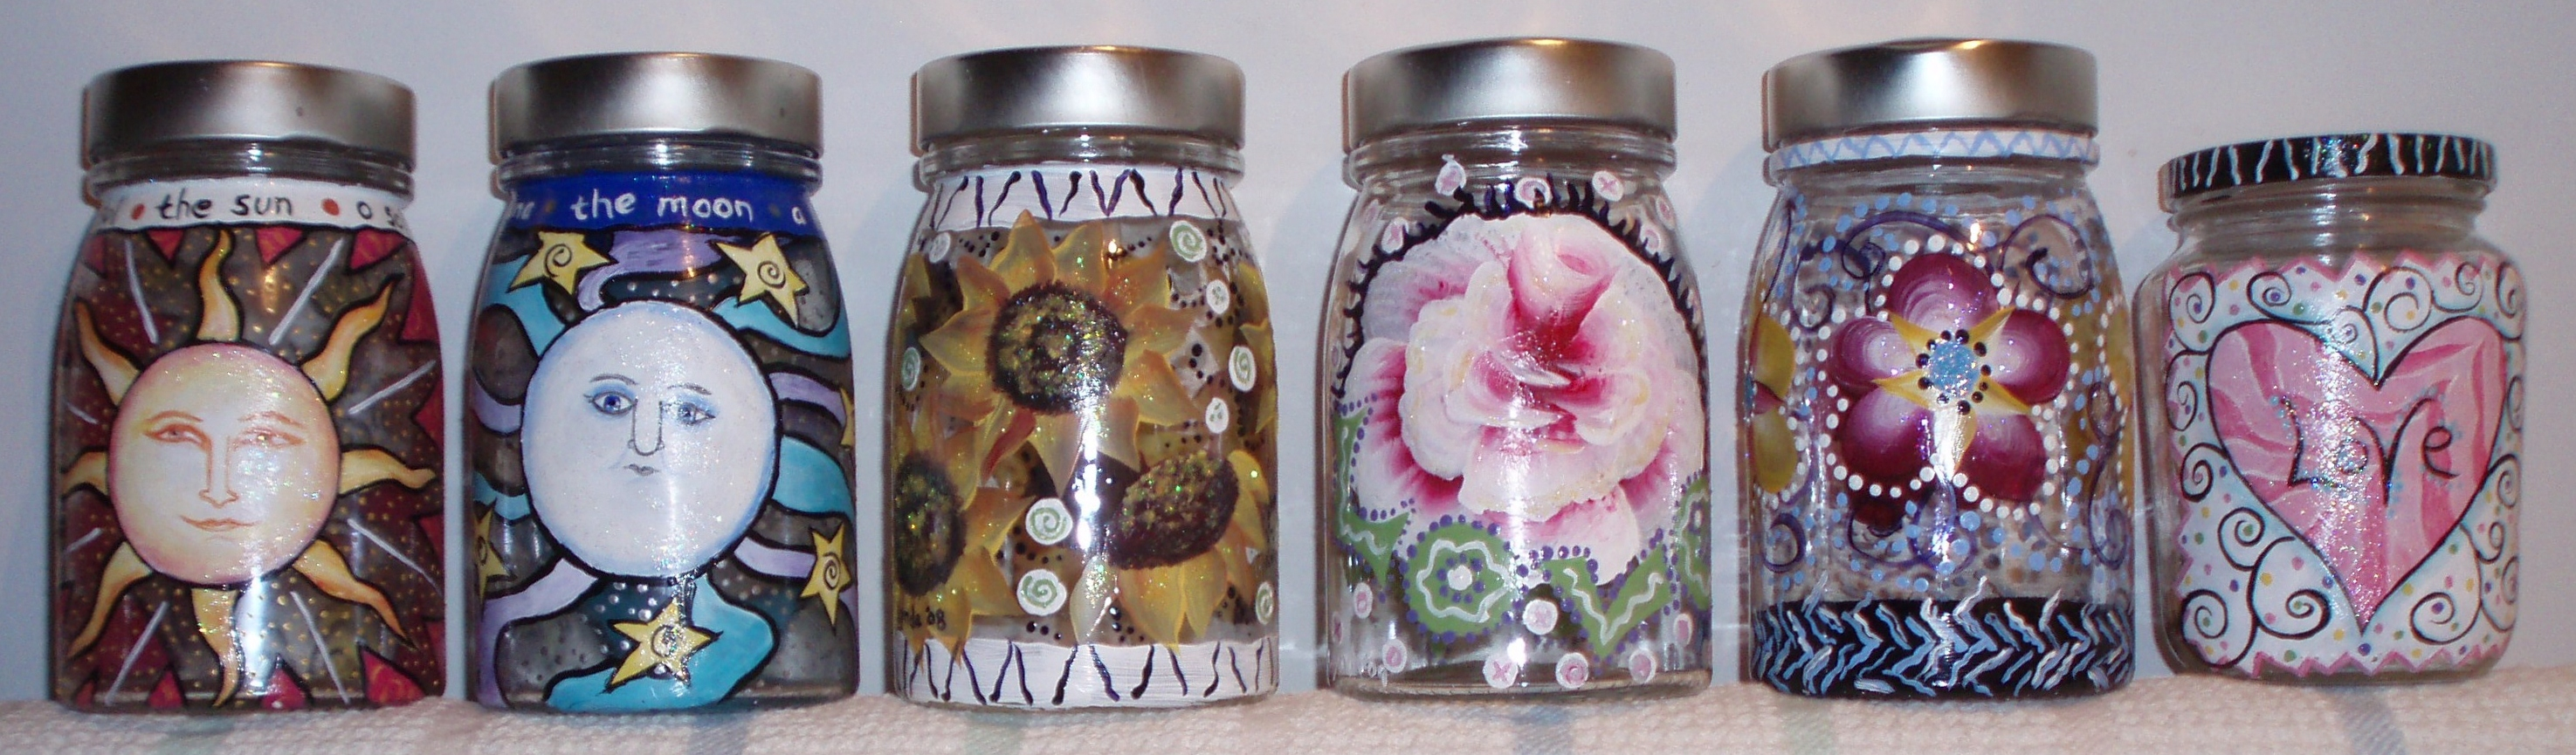 Tea canisters made from recycled glass jars with one stroke painting